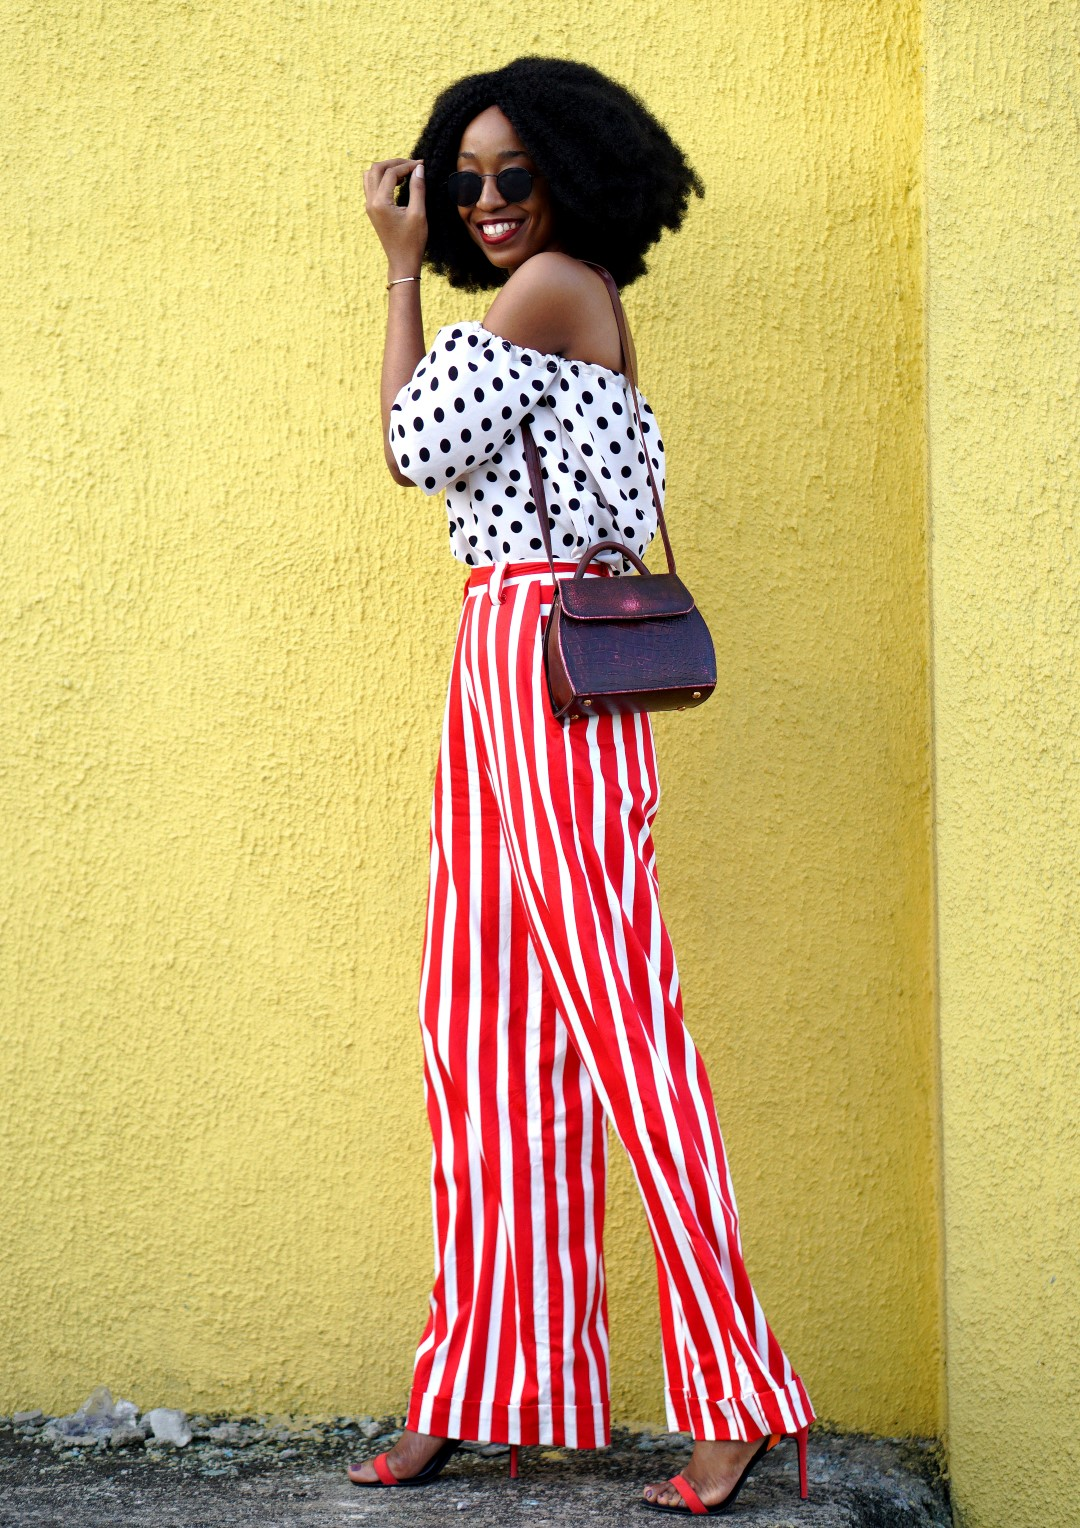 Mixed prints fashion trend : Blogger Cassie Daves In a polka dot off shoulder top and striped pants